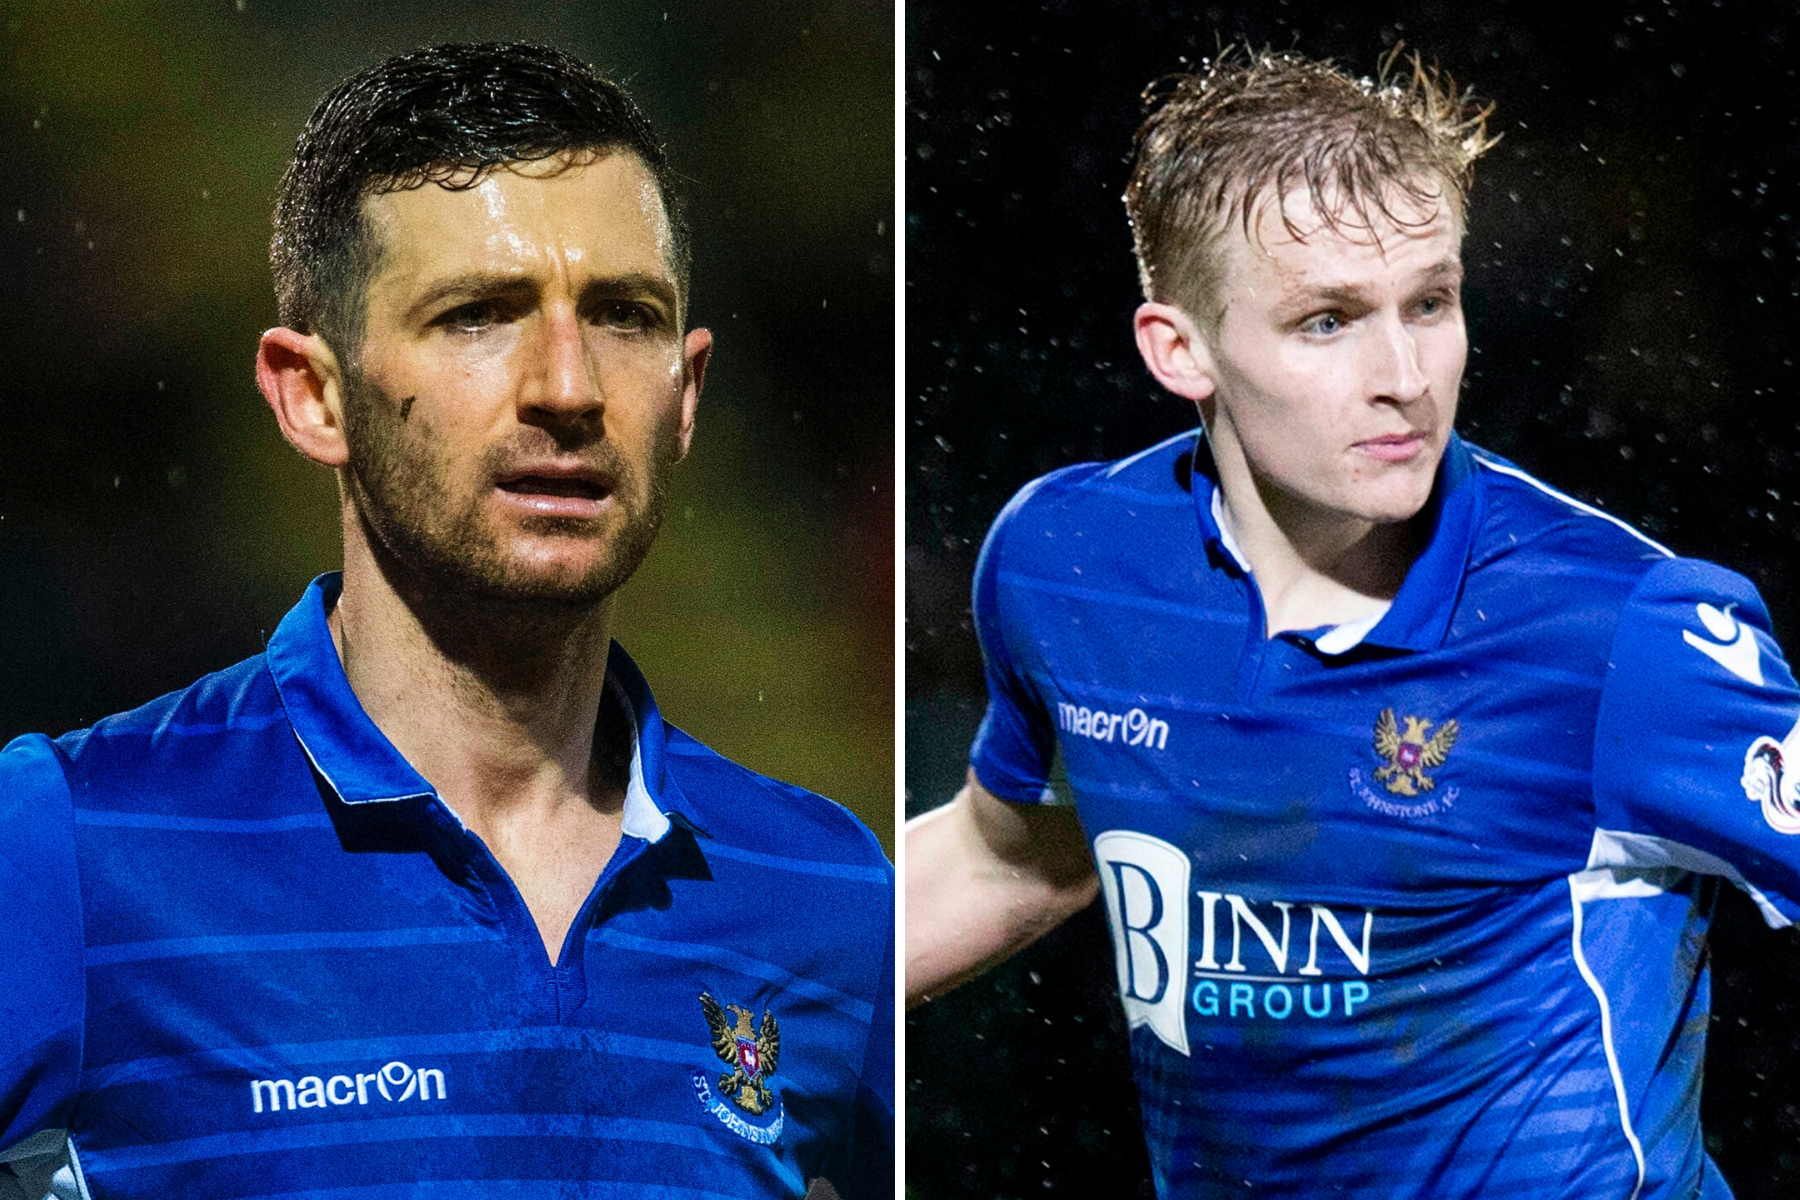 St Johnstone star Ali McCann is 'undroppable' and has a big future ahead, says Rangers loanee Jason Holt